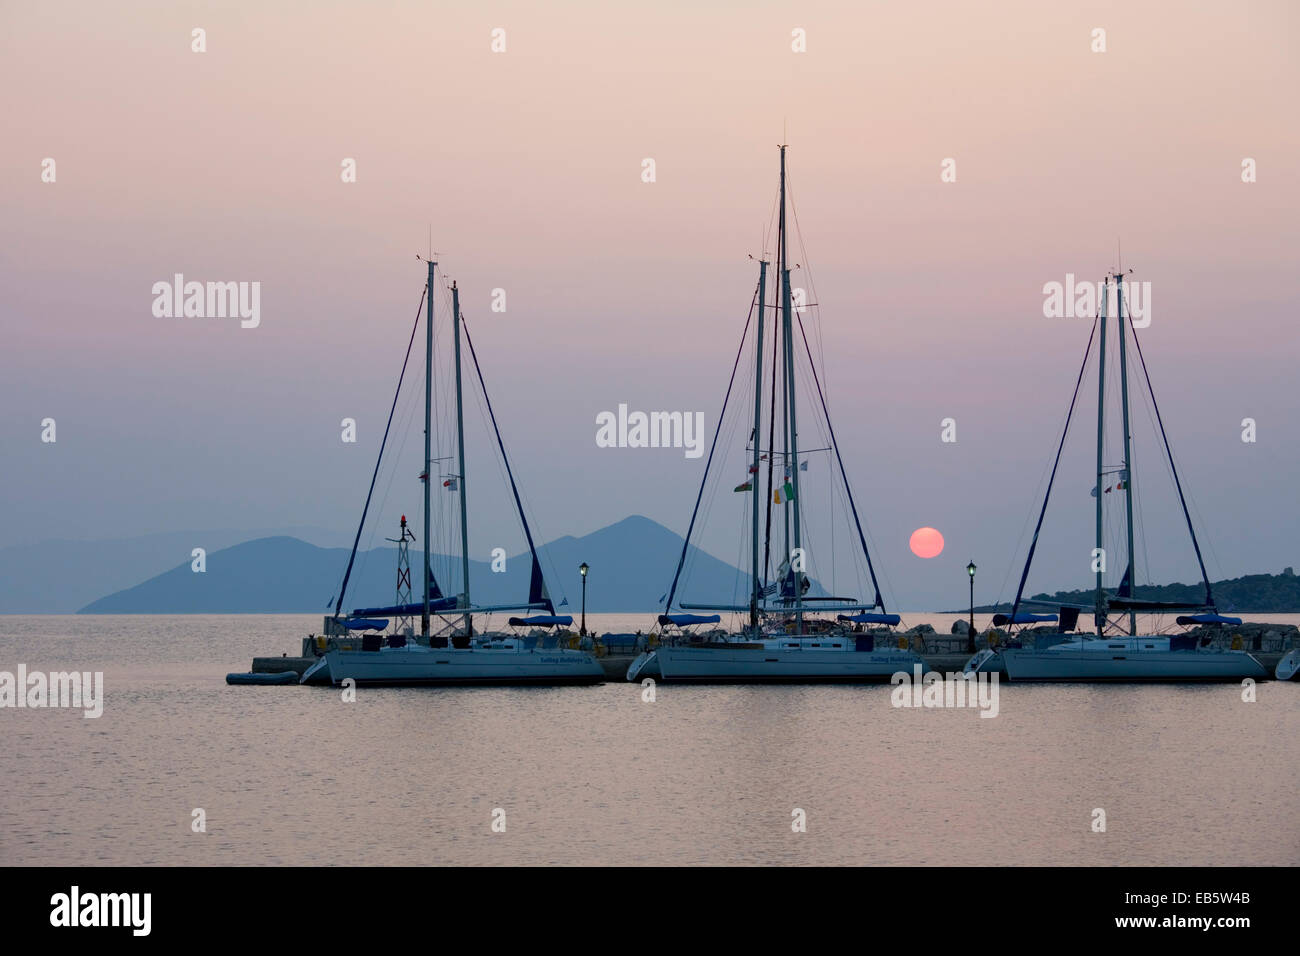 Frikes, Ithaca, Ionian Islands, Greece. View across the harbour at sunrise, the distant island of Atokos visible. - Stock Image